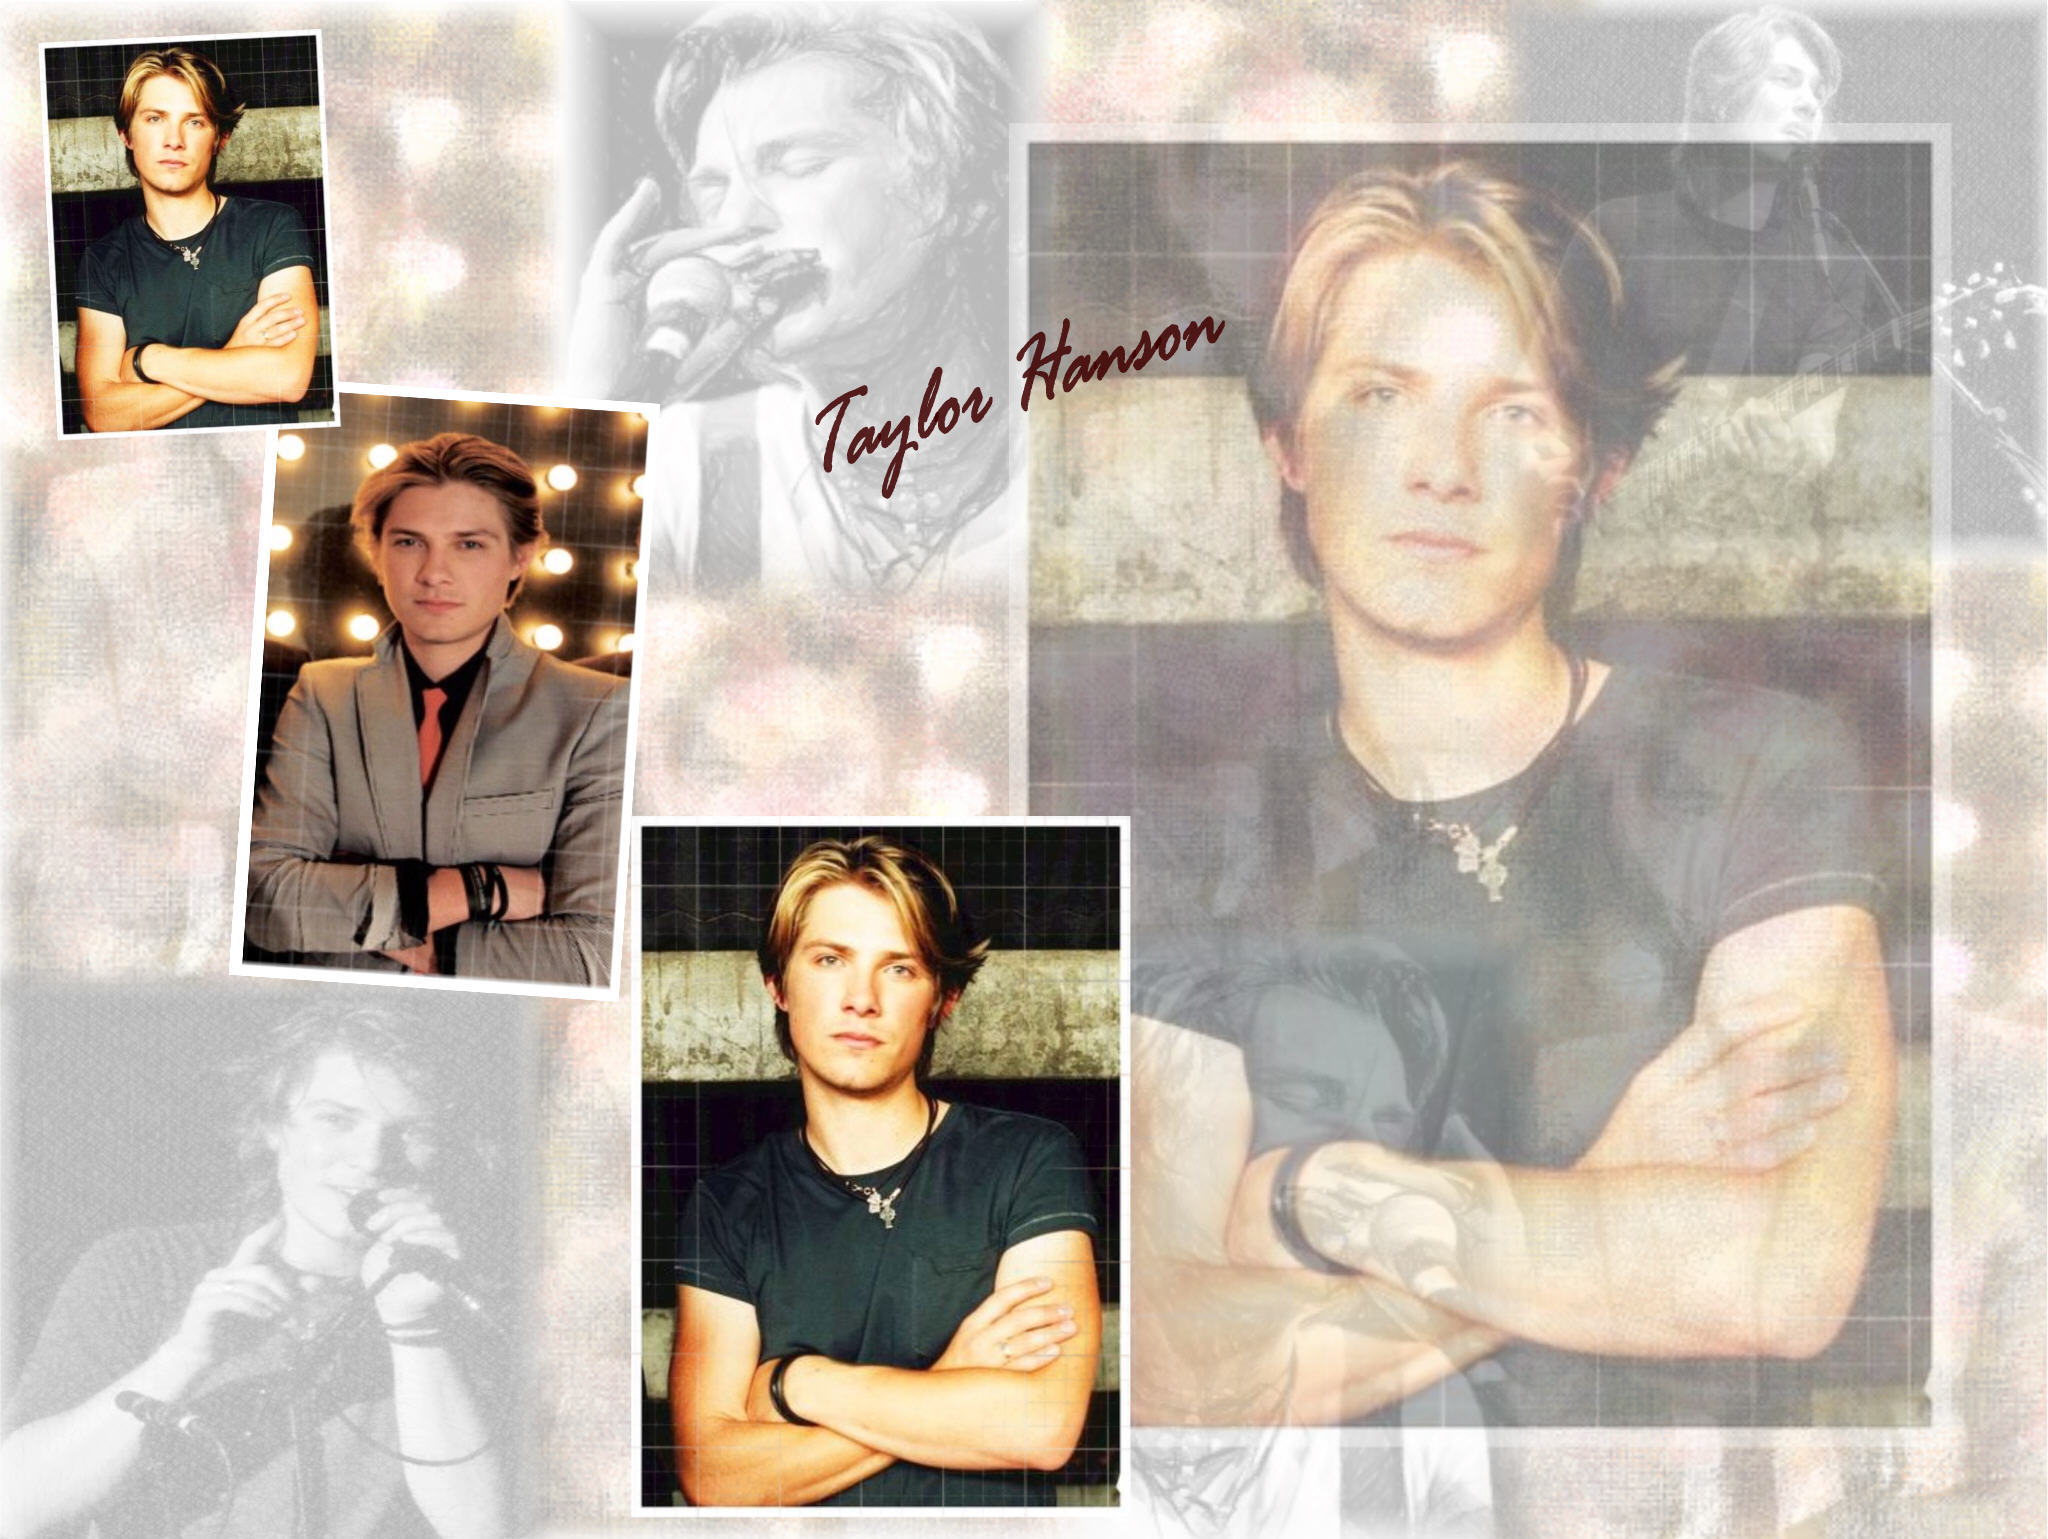 taylor hanson family pictures